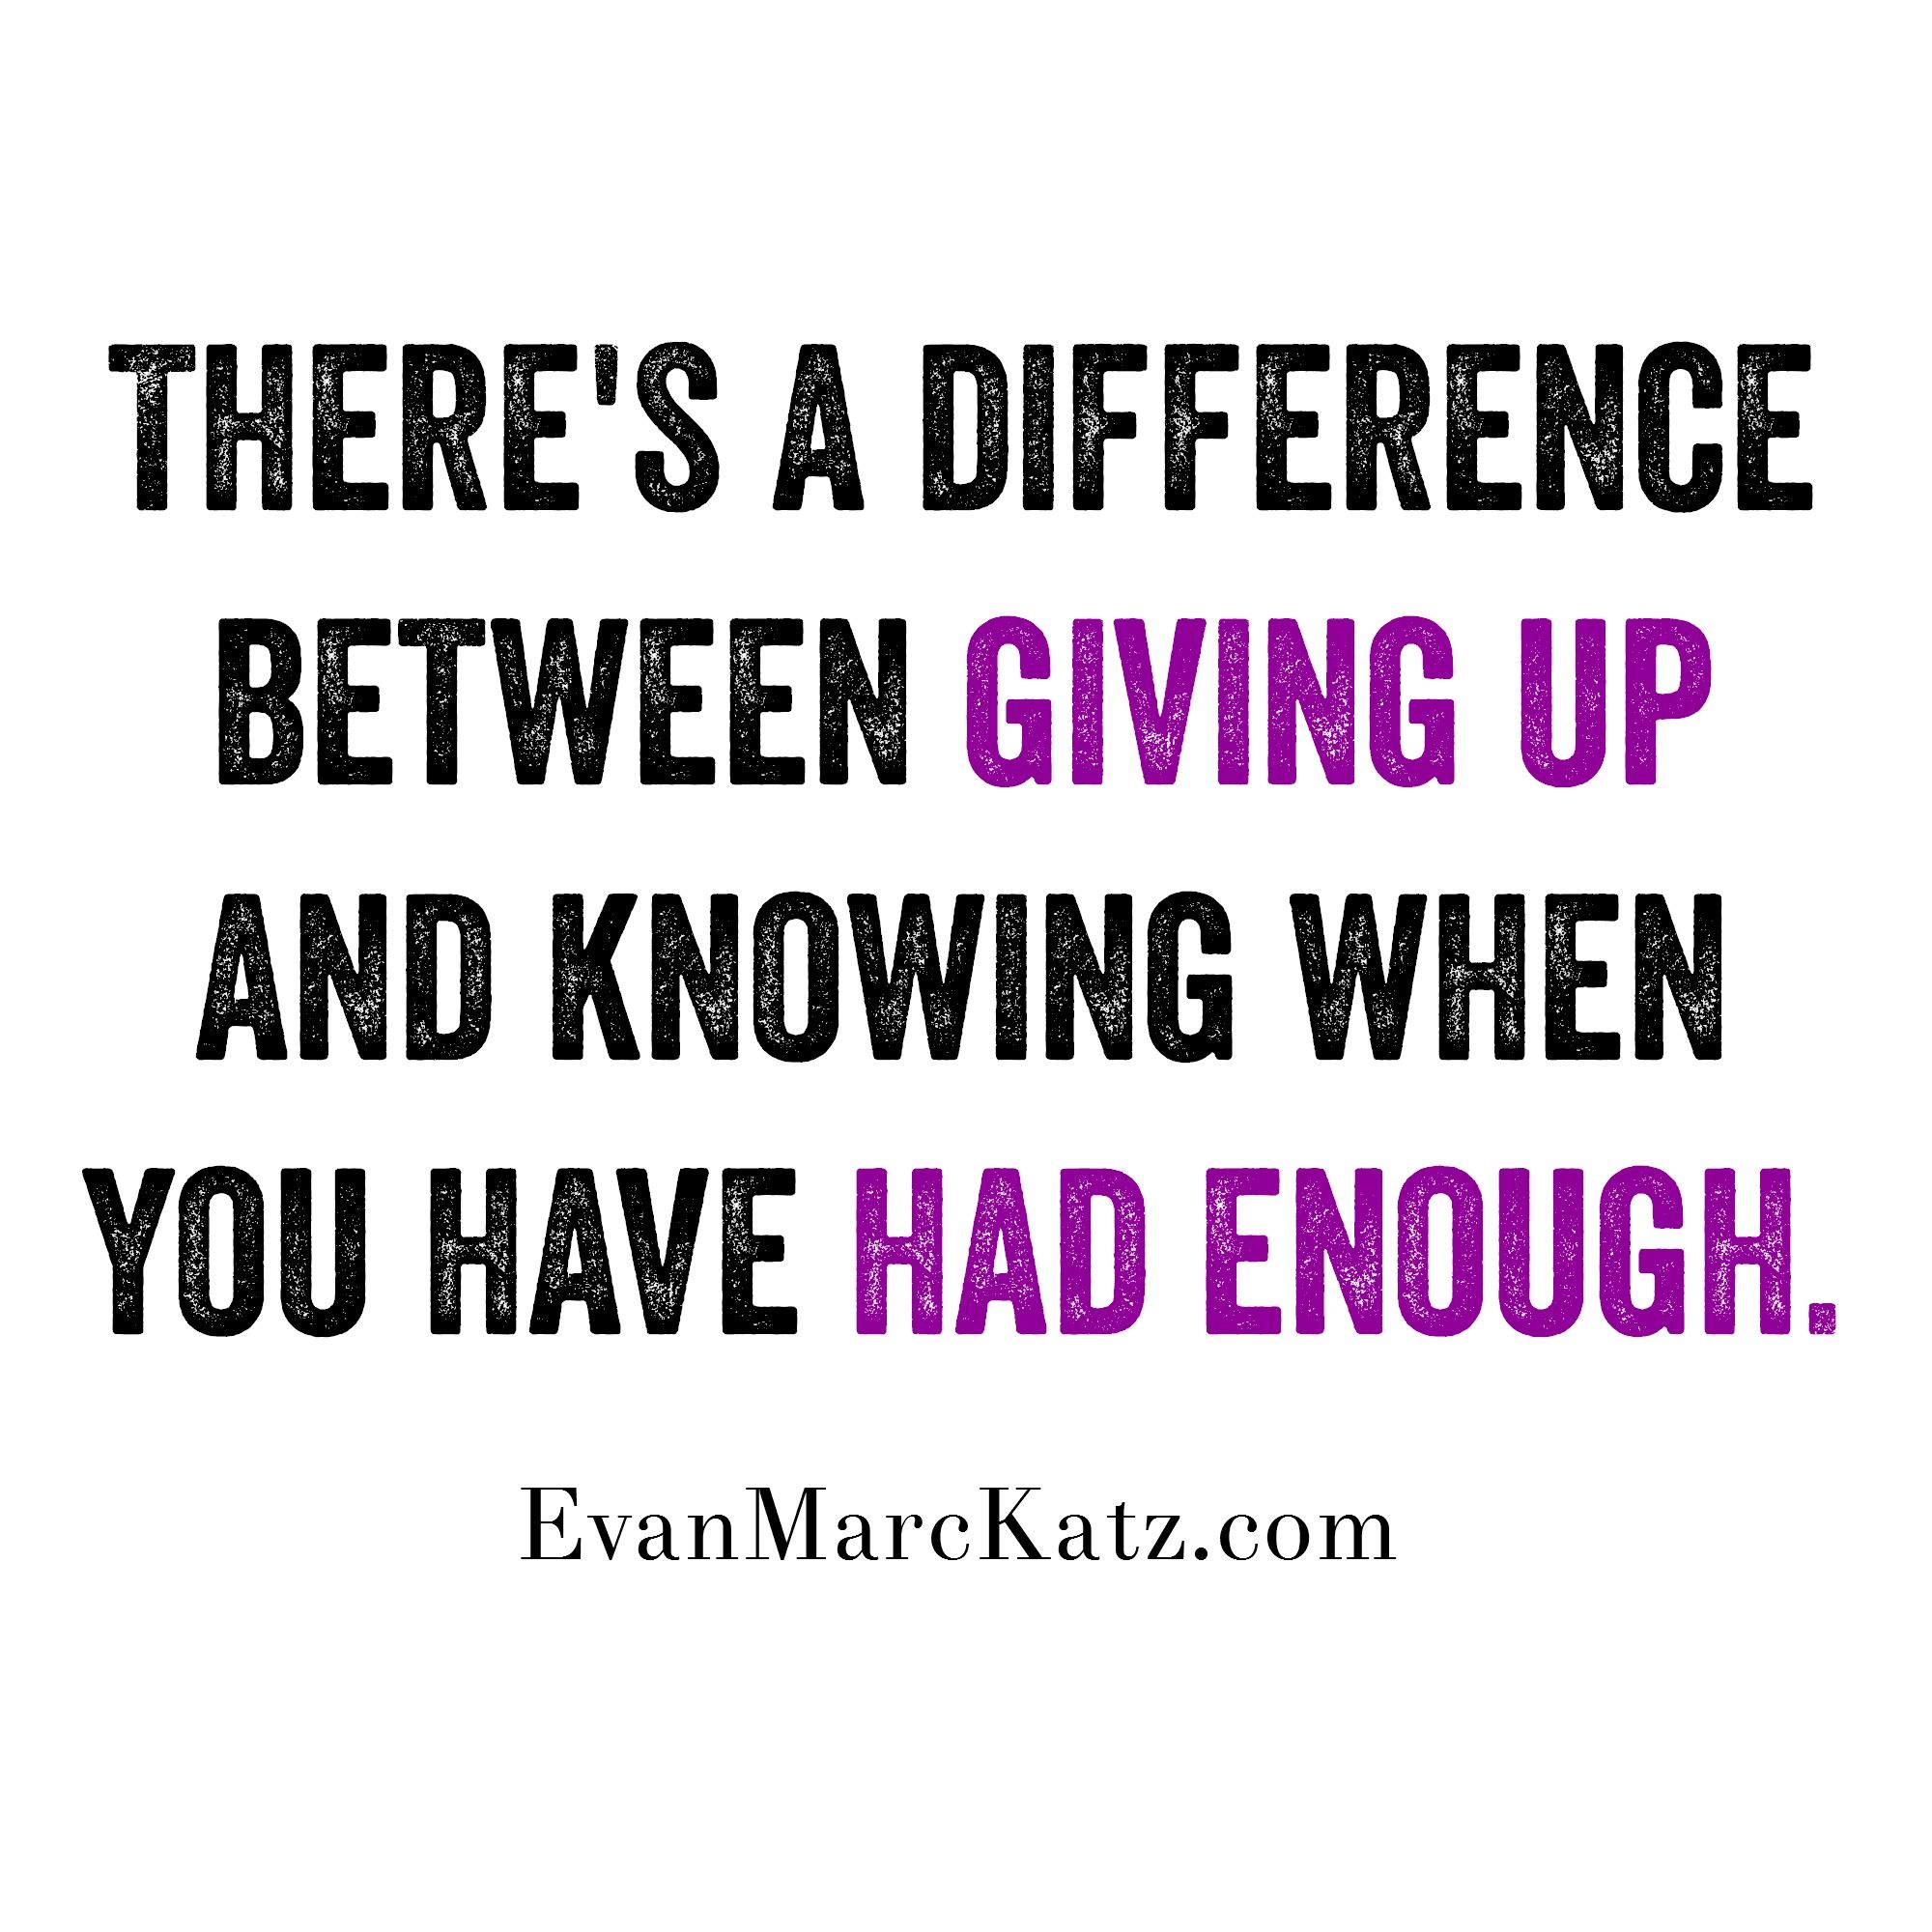 Theres A Difference Between Giving Up And Knowing When You Have Had